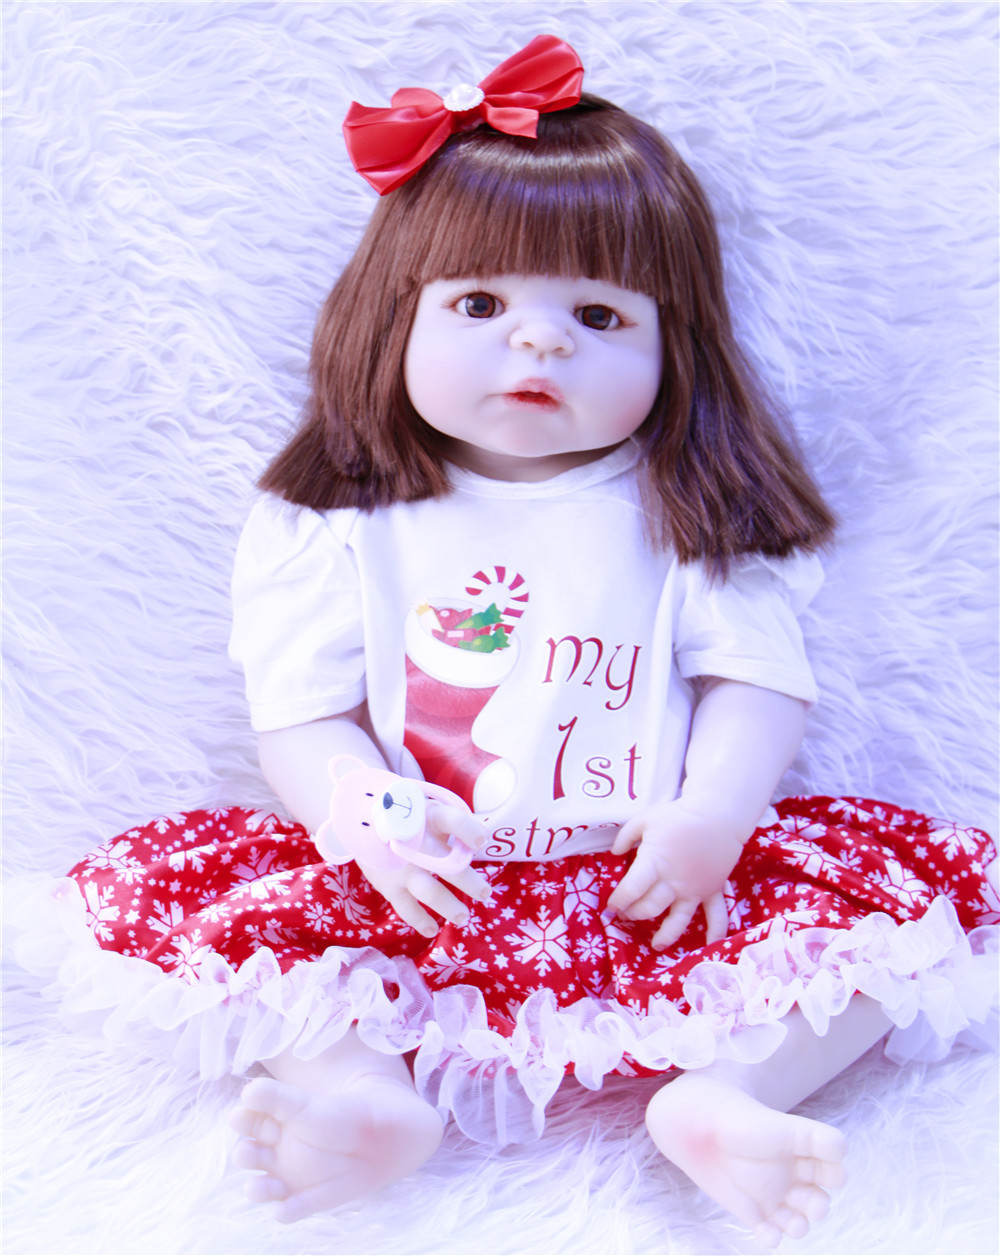 rooted hair 55cm Full Silicone Body Reborn Baby Doll Toy Realistic Newborn Princess Girls Babies Doll Kid Brinquedos Bathe Toyrooted hair 55cm Full Silicone Body Reborn Baby Doll Toy Realistic Newborn Princess Girls Babies Doll Kid Brinquedos Bathe Toy